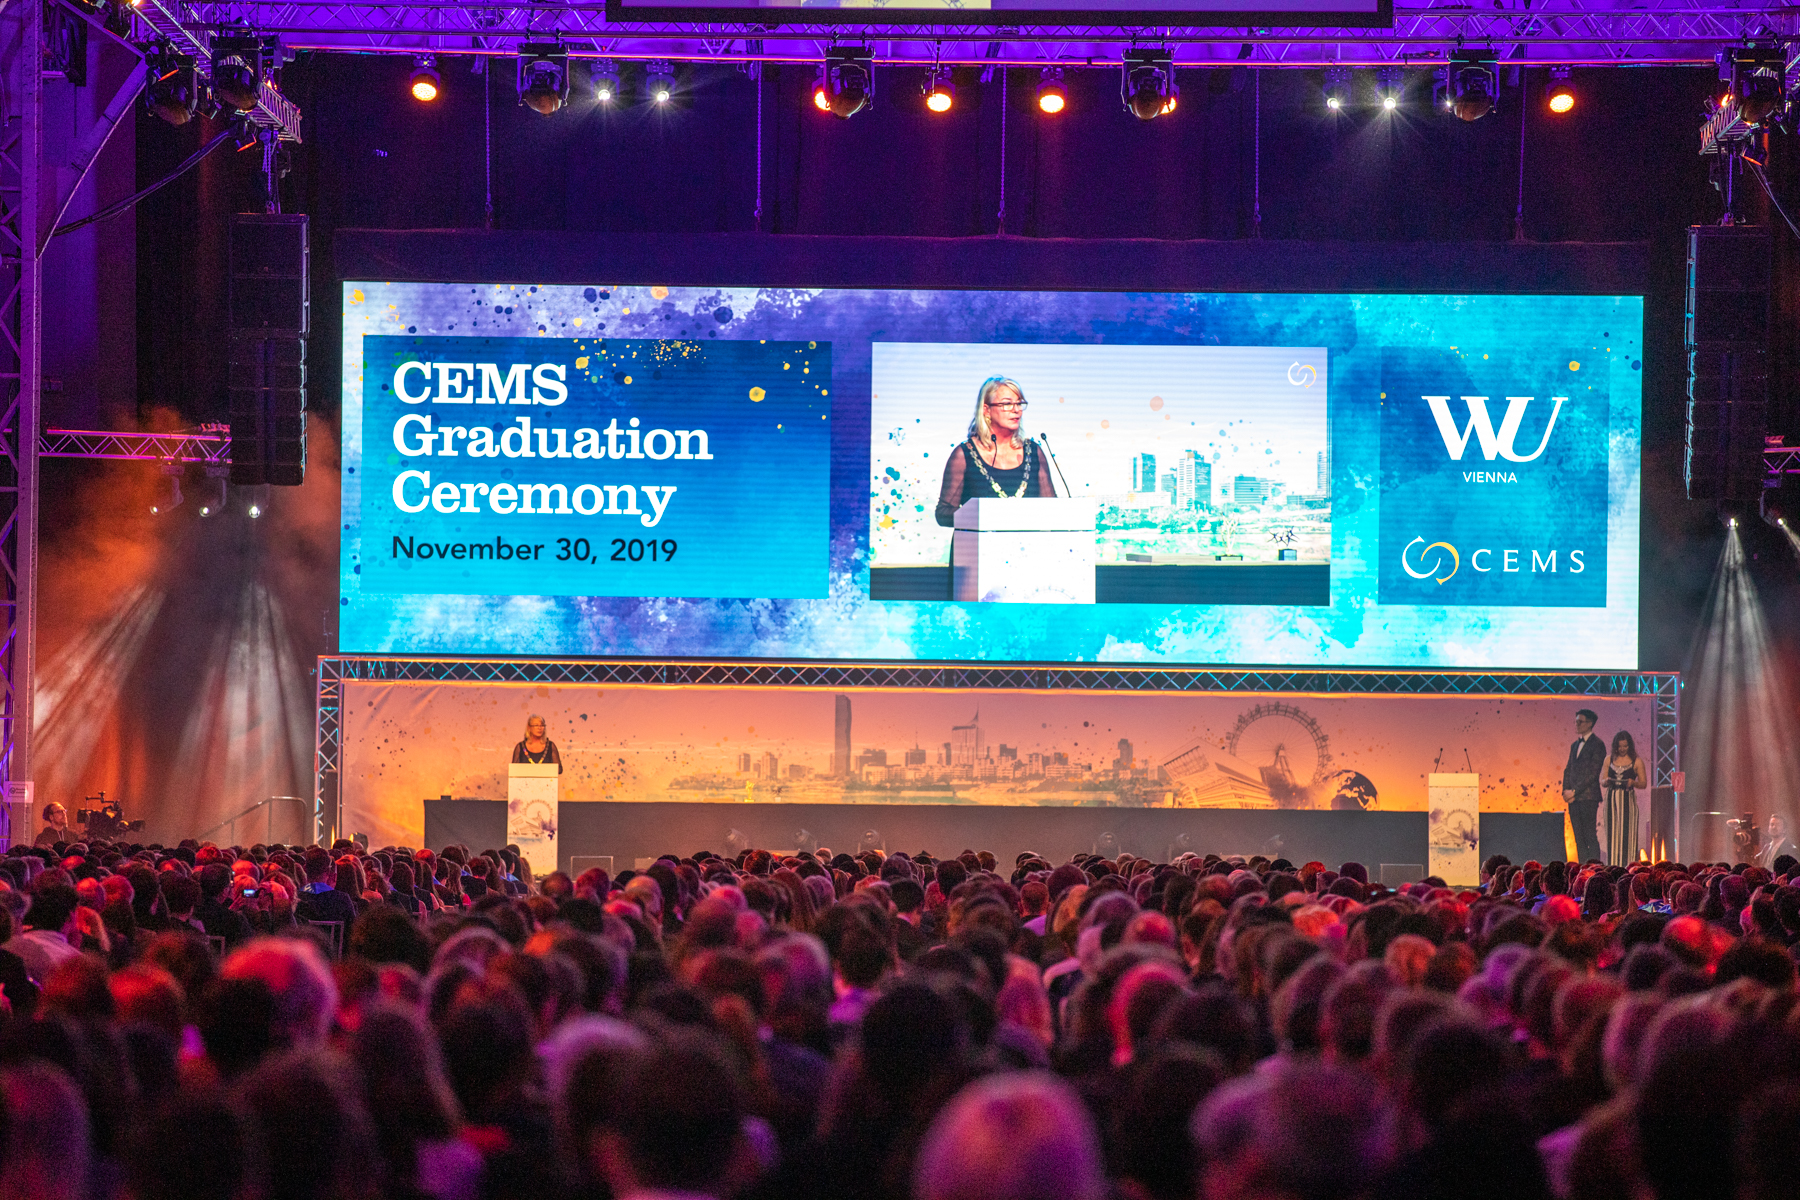 CEMS Annual Events 2019